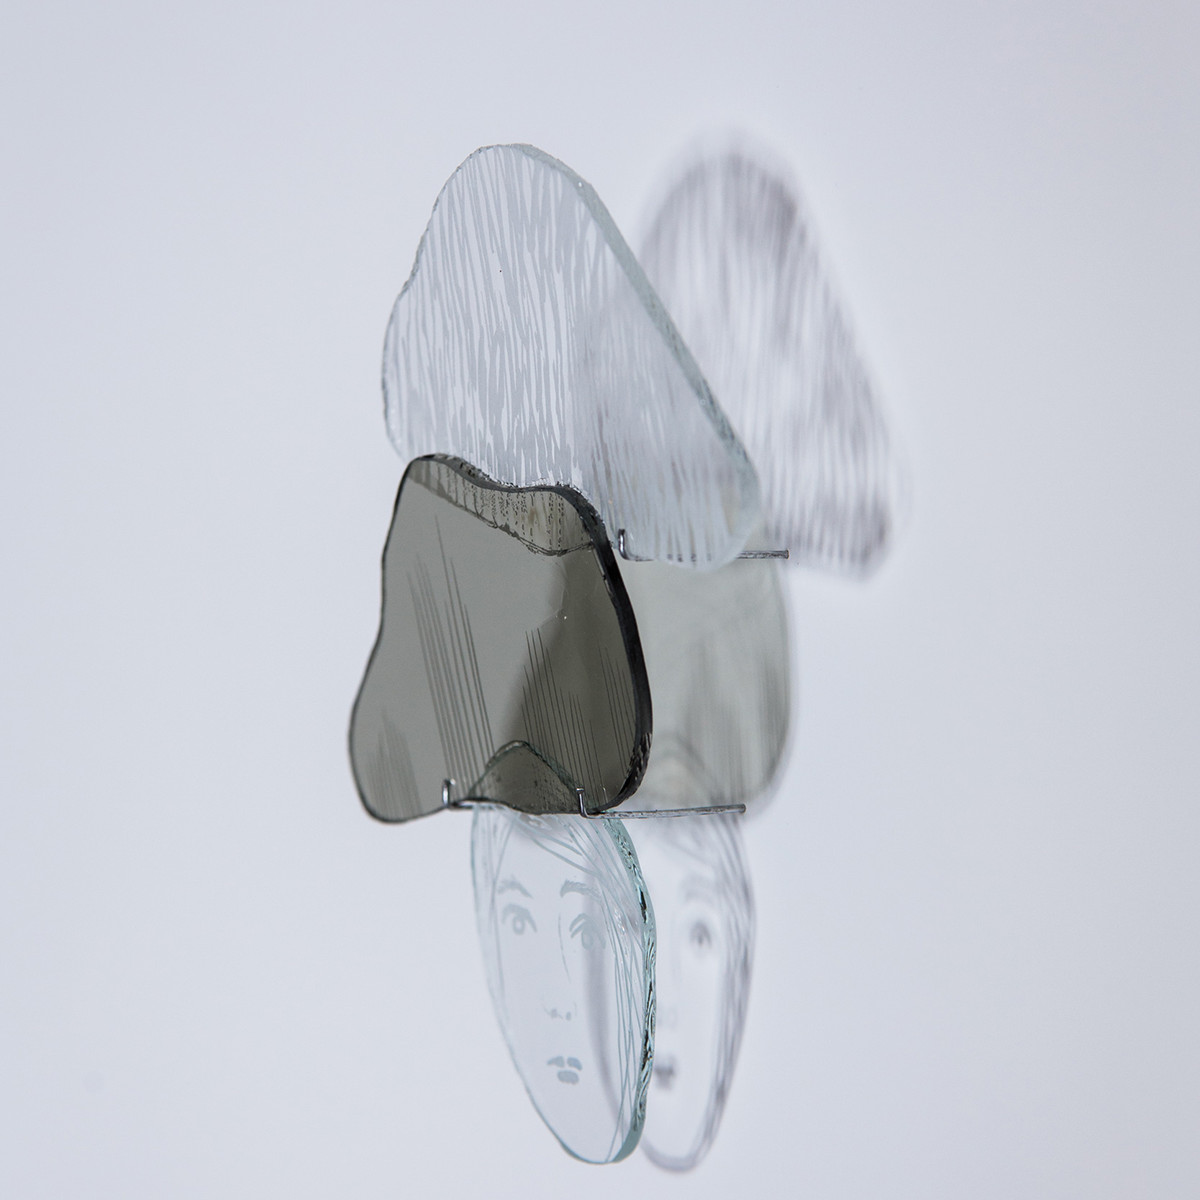 Variable cloudiness - Elina Salonen